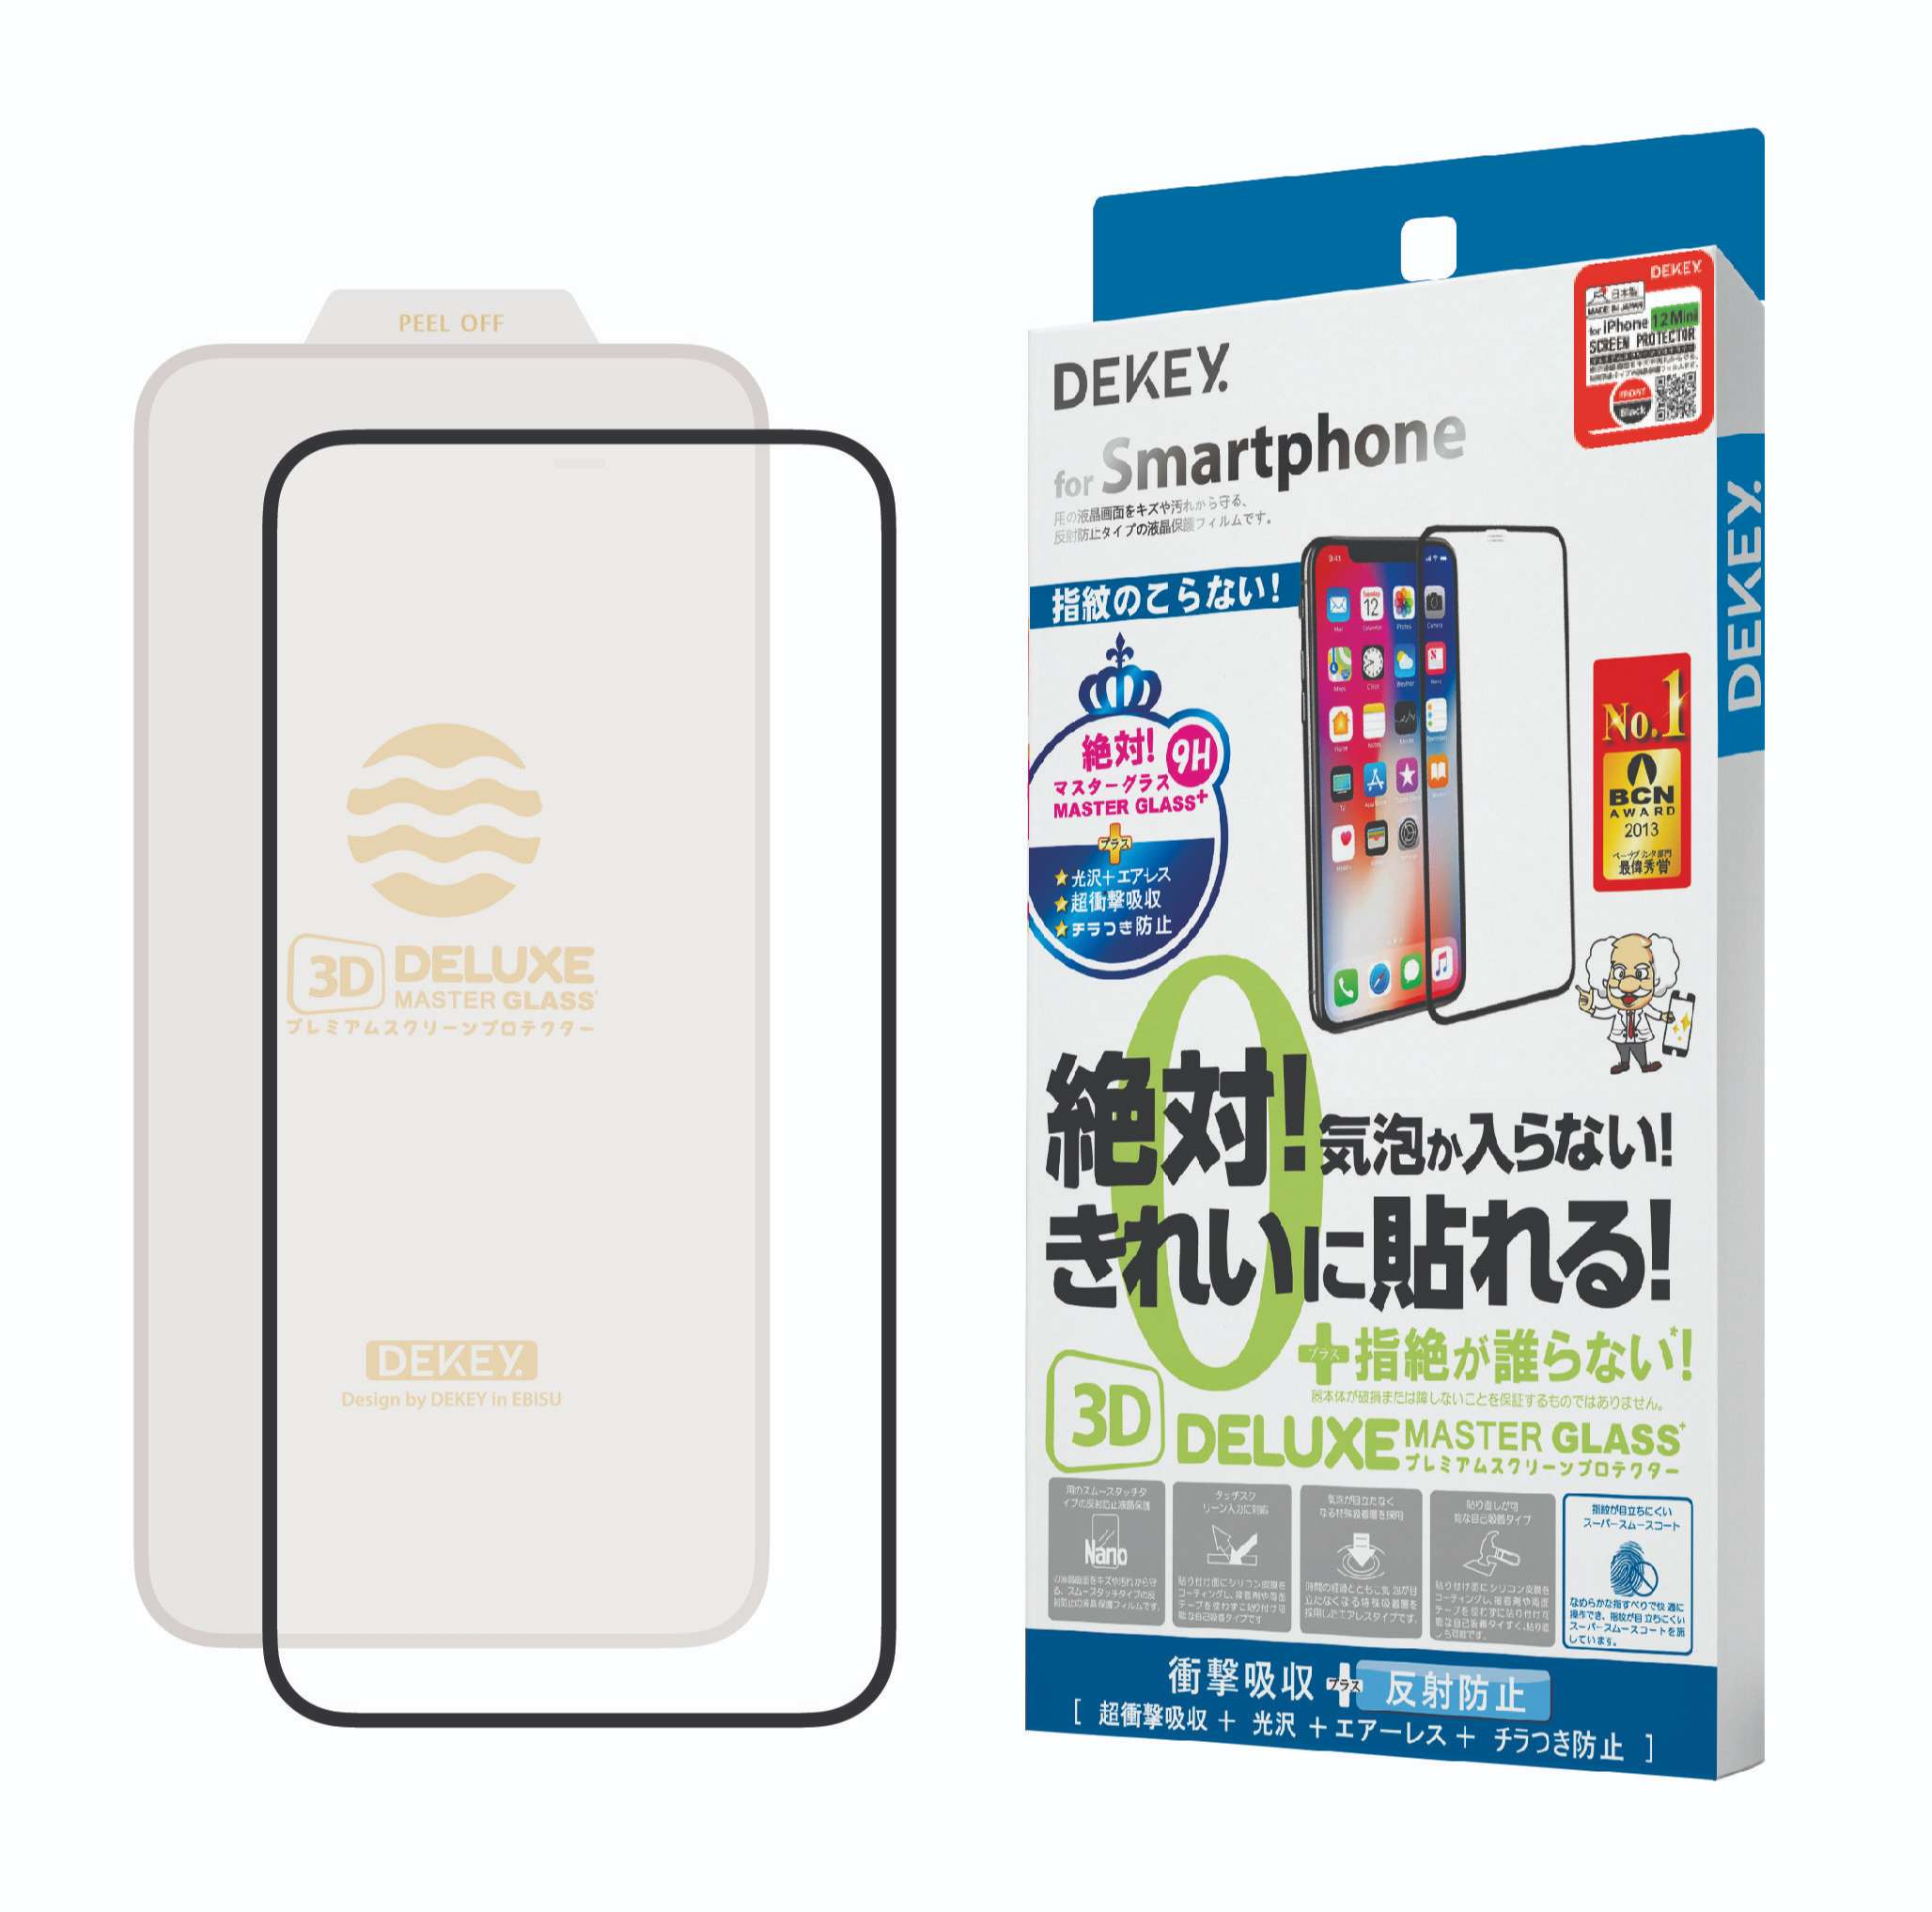 Miếng Dán Dekey Full 3D Master Glass Deluxe iPhone 5.4''